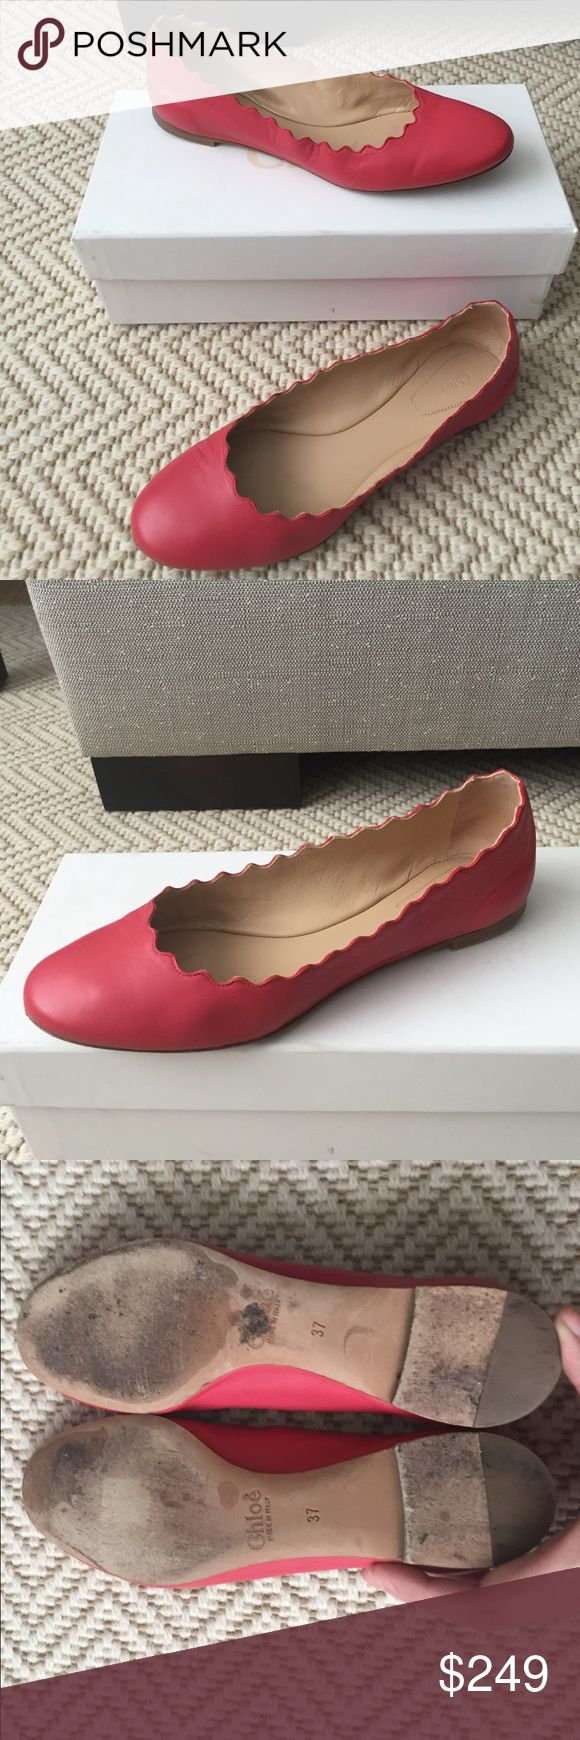 "MINT Chloe Lauren Leather Scalloped Ballet Flats 7 Chloe napa leather ballerina flat in raspberry. 3"" flat stacked heel. Round toe. Size 7. Worn once for a few hours. Uppers are like new. There are a few surface scuffs on the sole, but no wear. Come with box and cards. No dust bag. Chloe Shoes Flats & Loafers"